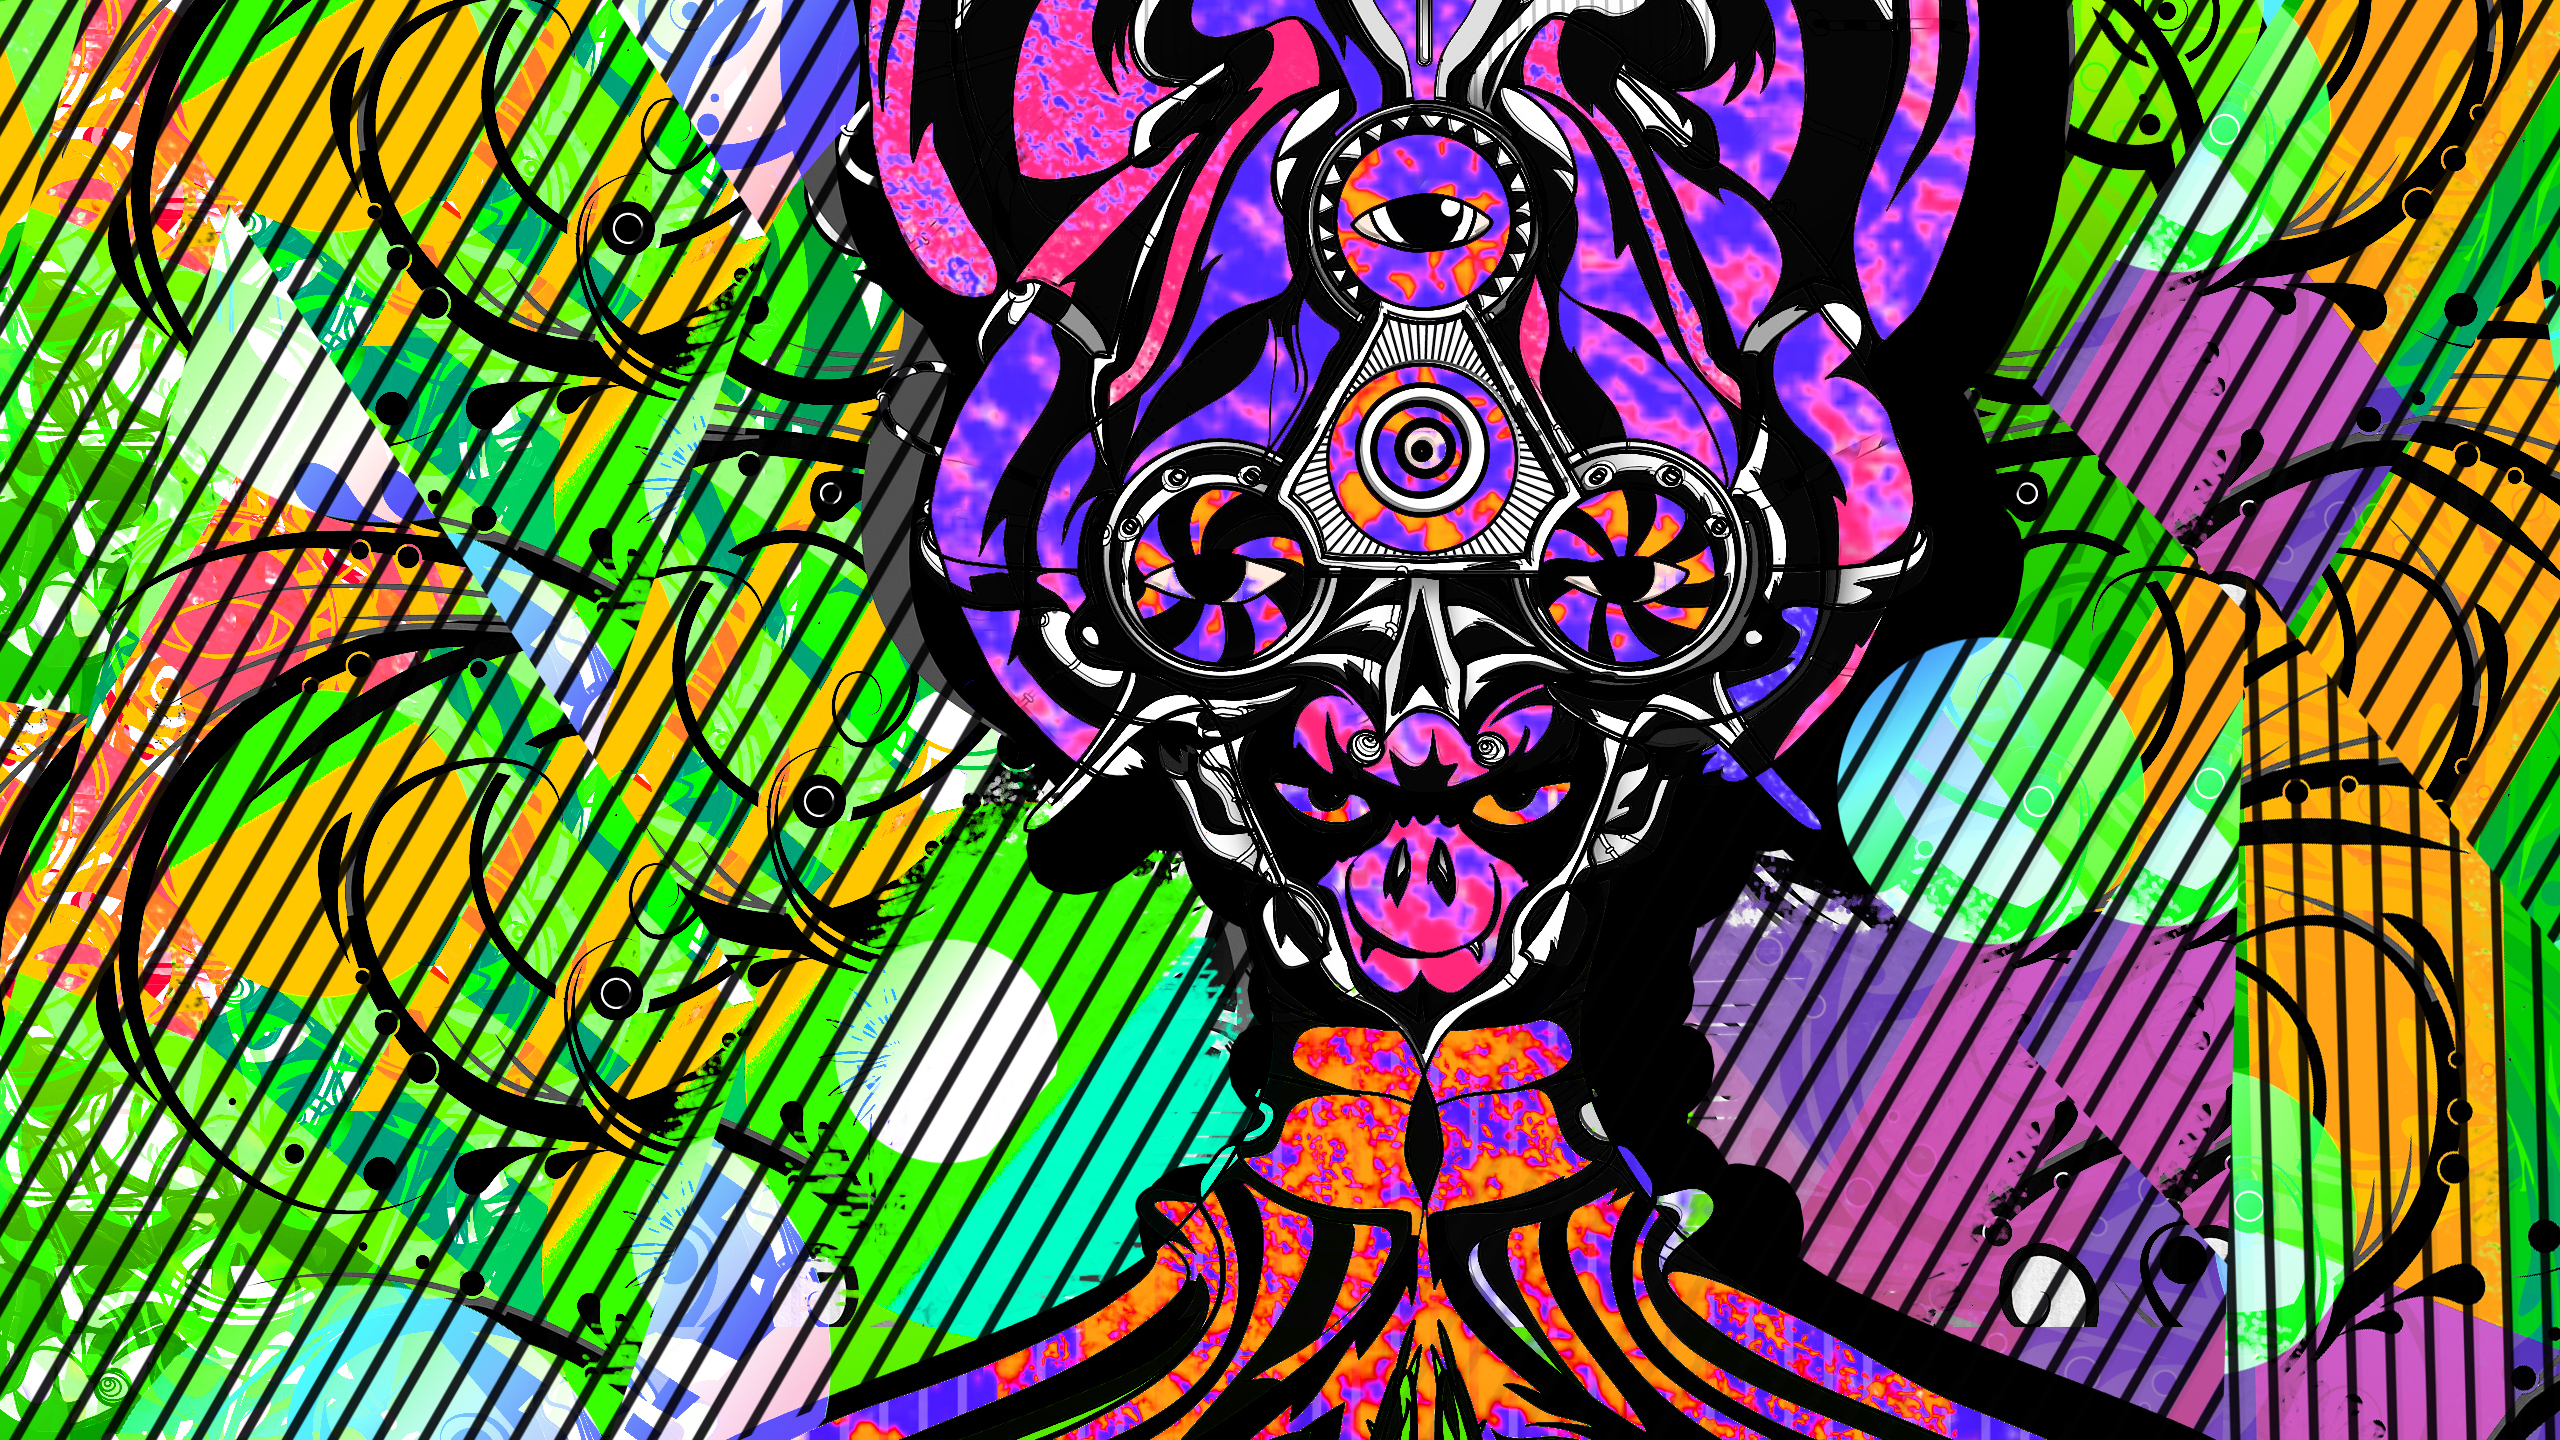 Acid Trippy Wallpapers Hd Http Runyourjewels Com Round 3 Chris Hadzipetros Full